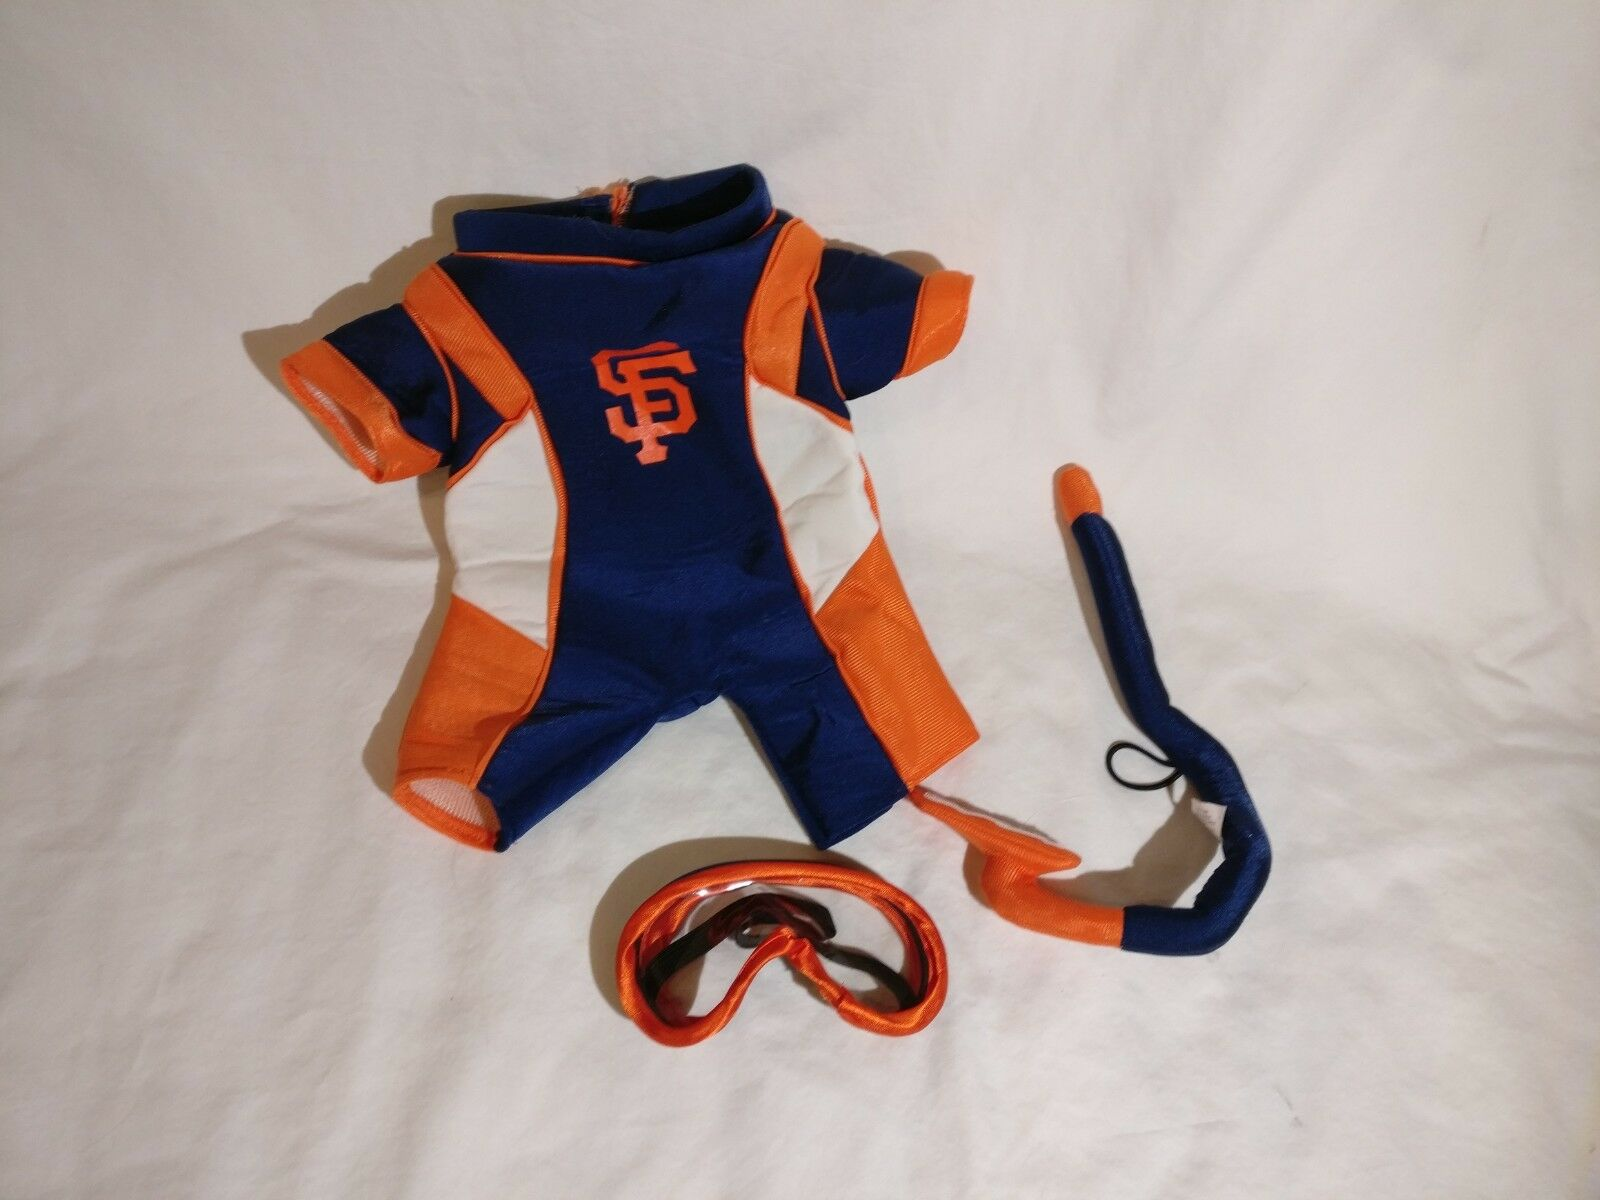 Build-A-Bear Accessories - Assorted Exclusive Exclusive Exclusive Clothes, Hats, Furniture, giocattoli d087c5